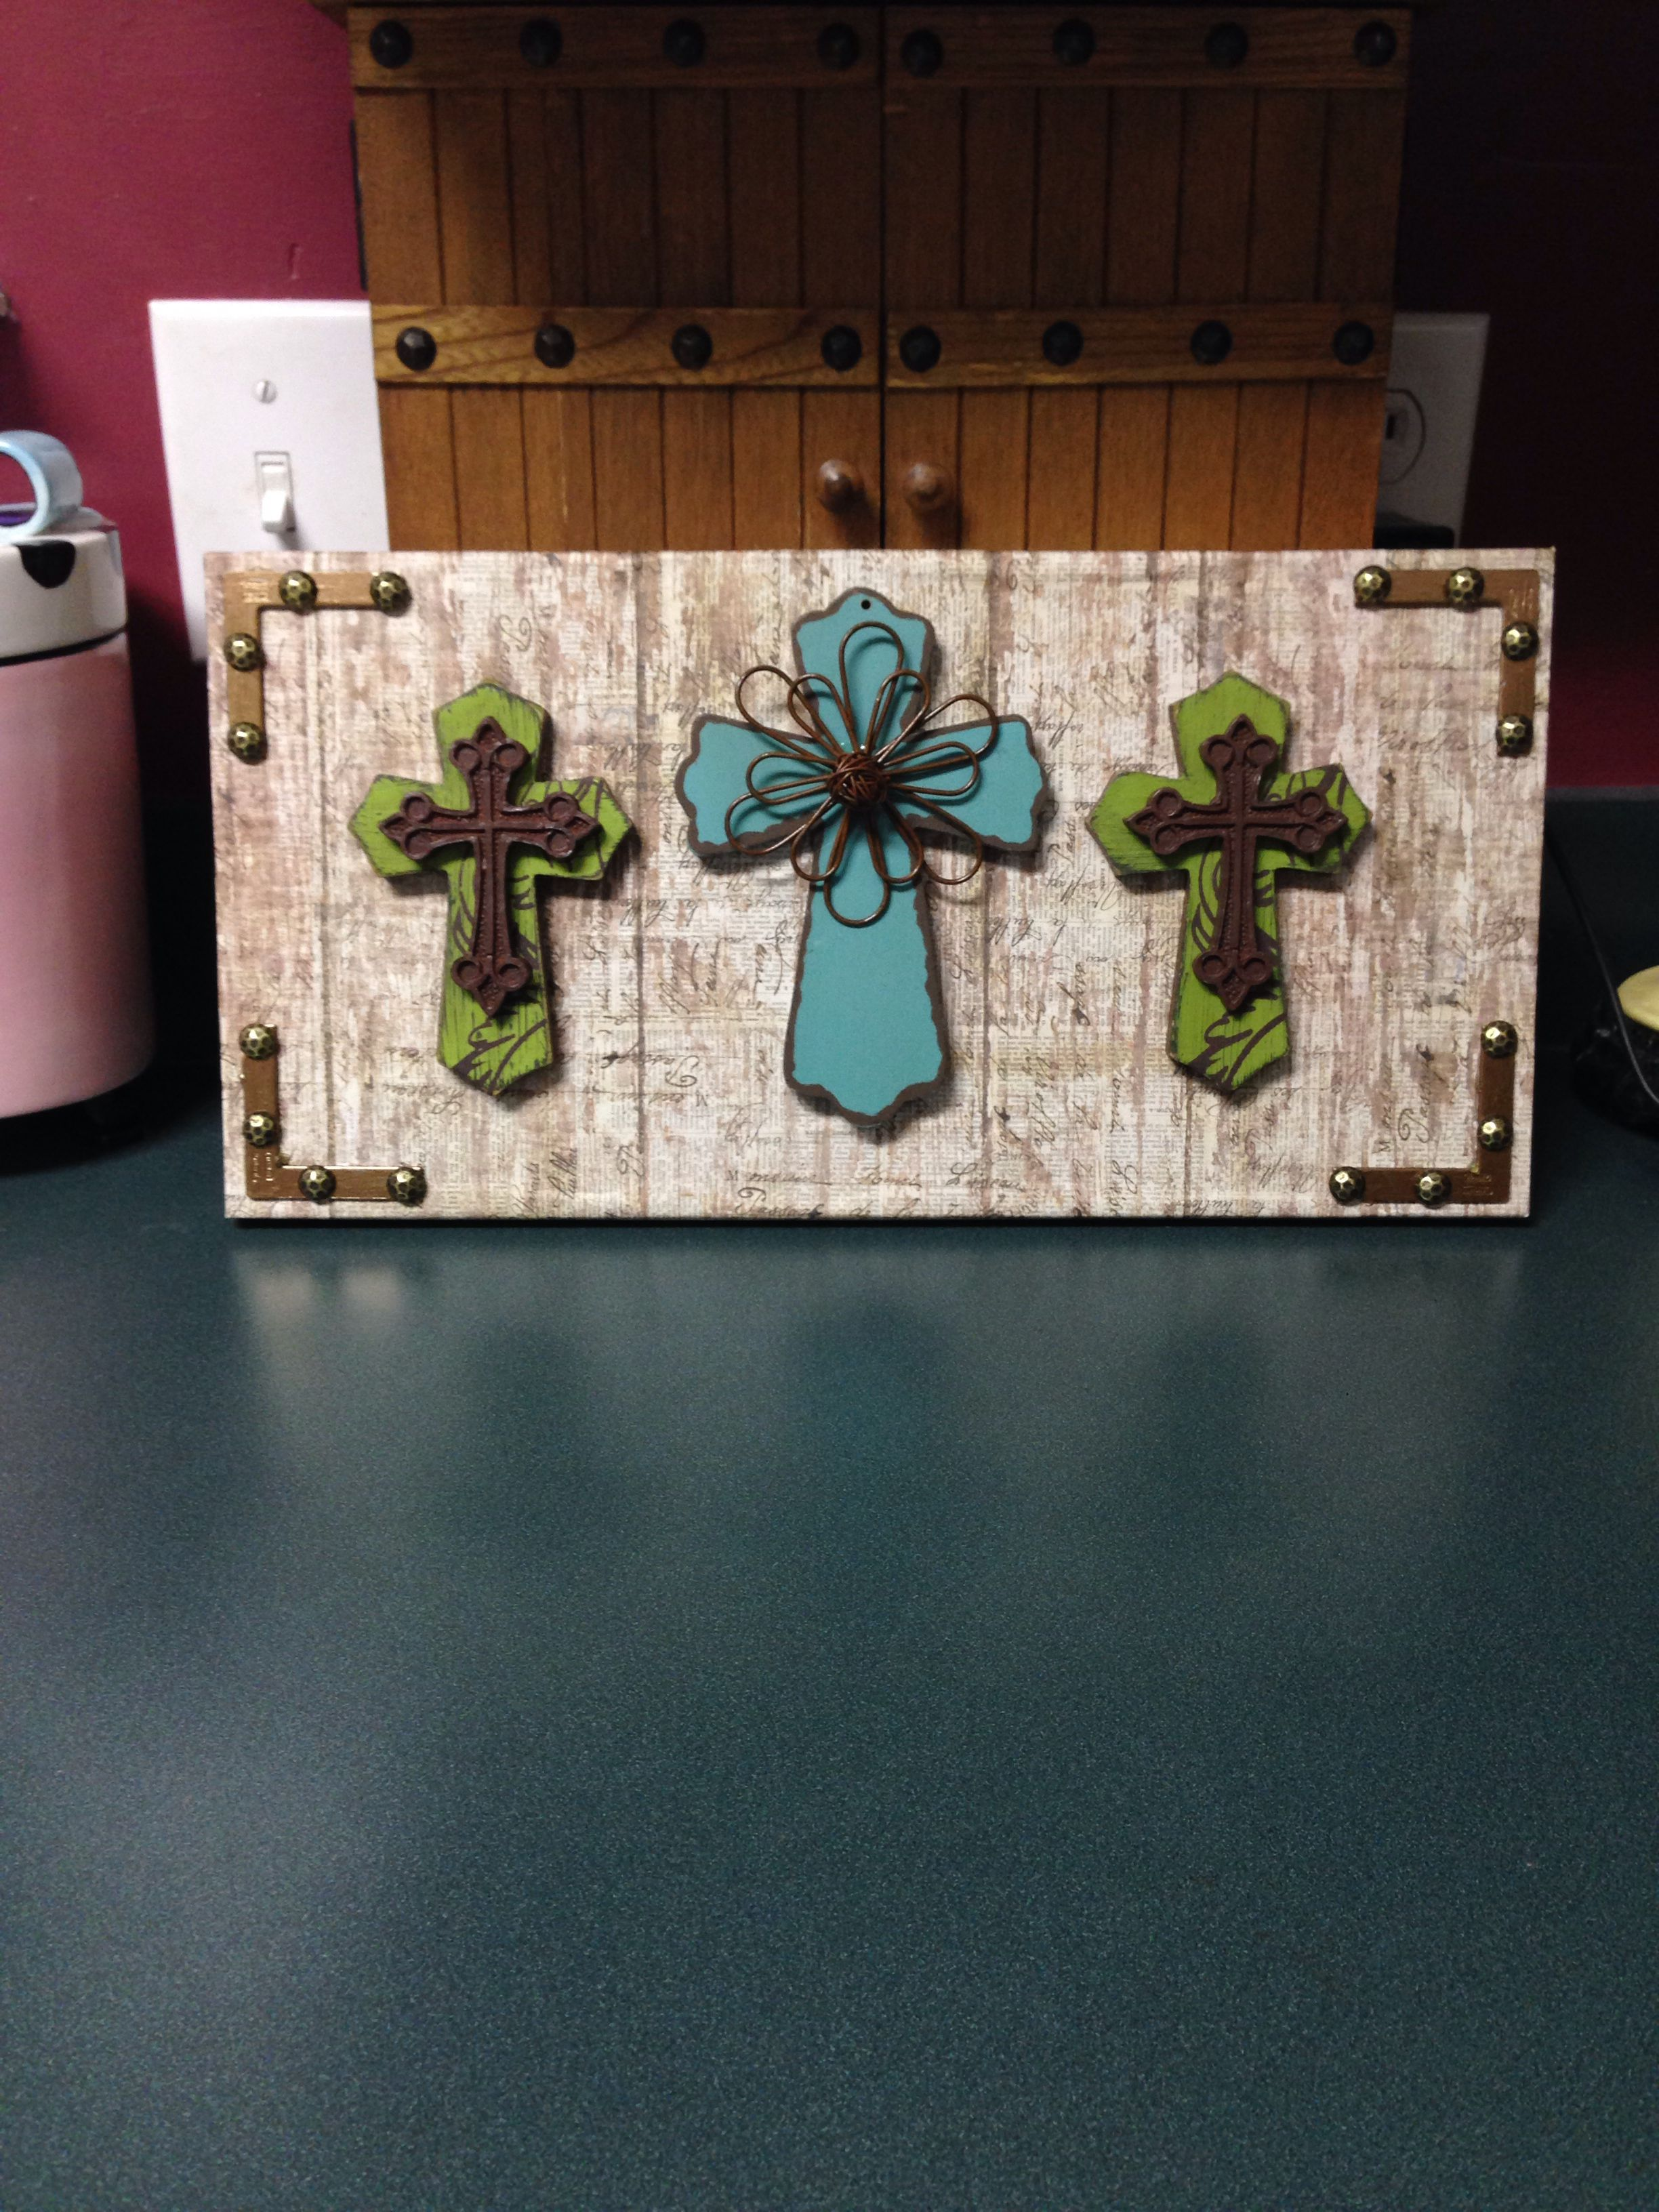 Scrapbook paper display - My Display Of Three Decorative Crosses On A Board Covered With Scrapbook Paper